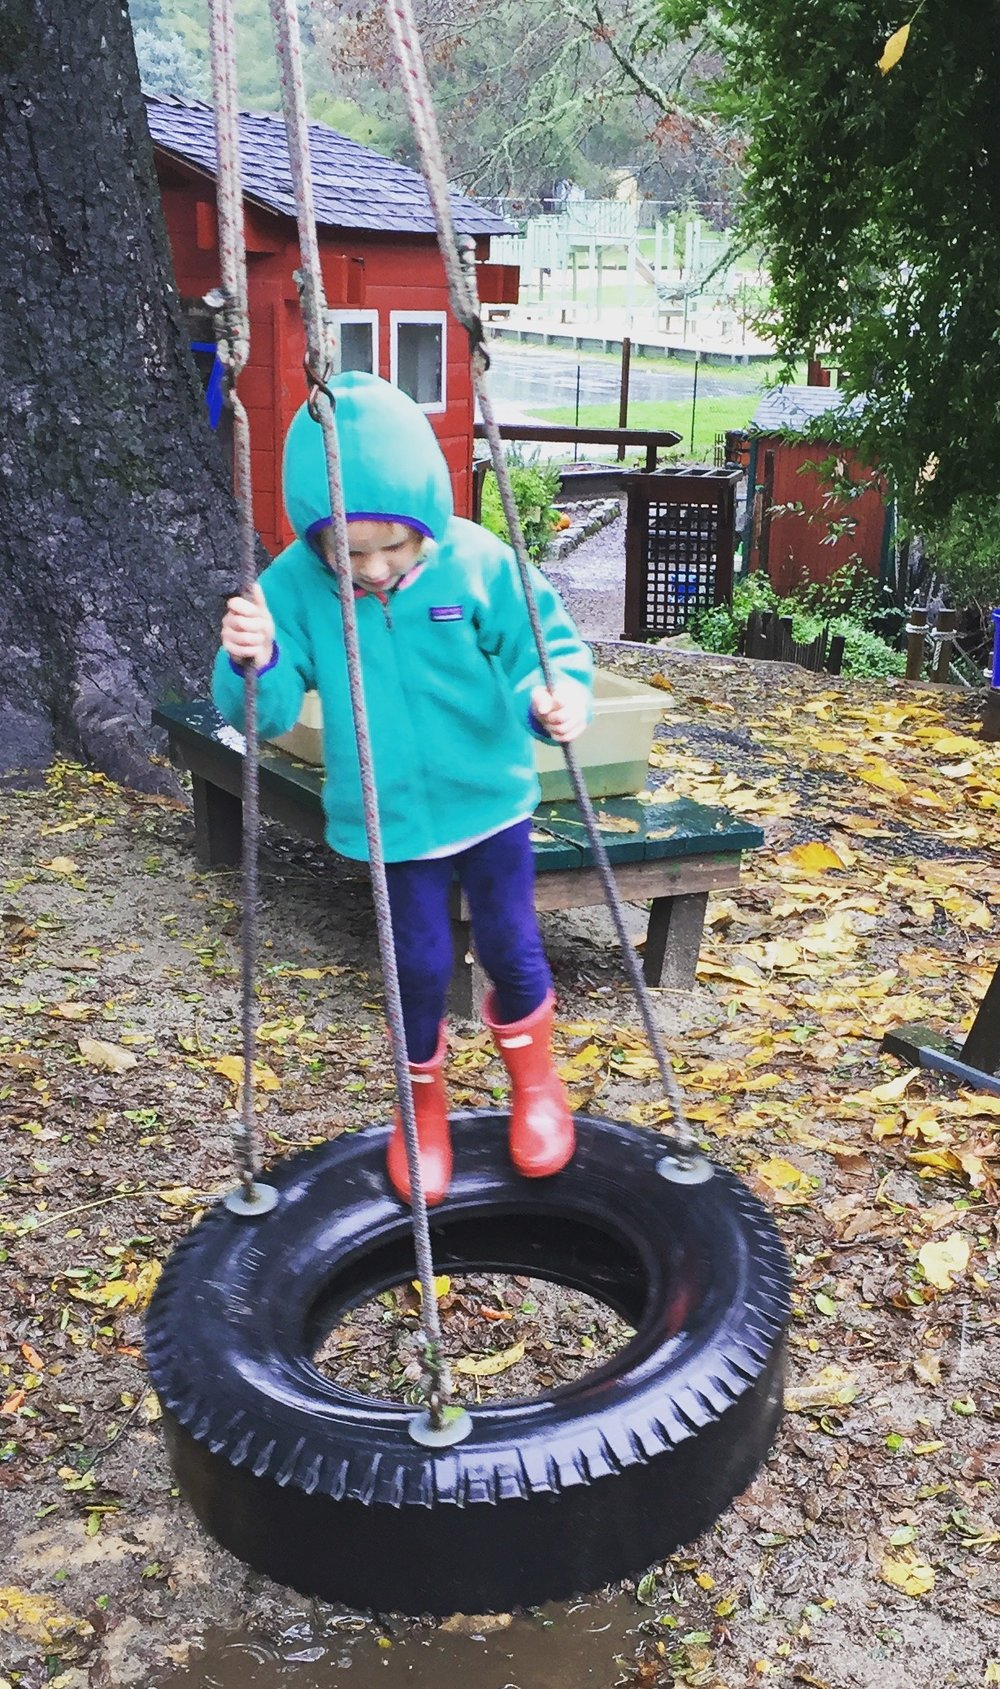 A tire swing may be something your child craves or avoids- forcing a child onto a swing can be VERY disregulating and send them into a state of flight- other children cannot get enough- always checking in with your child with any swing is critical